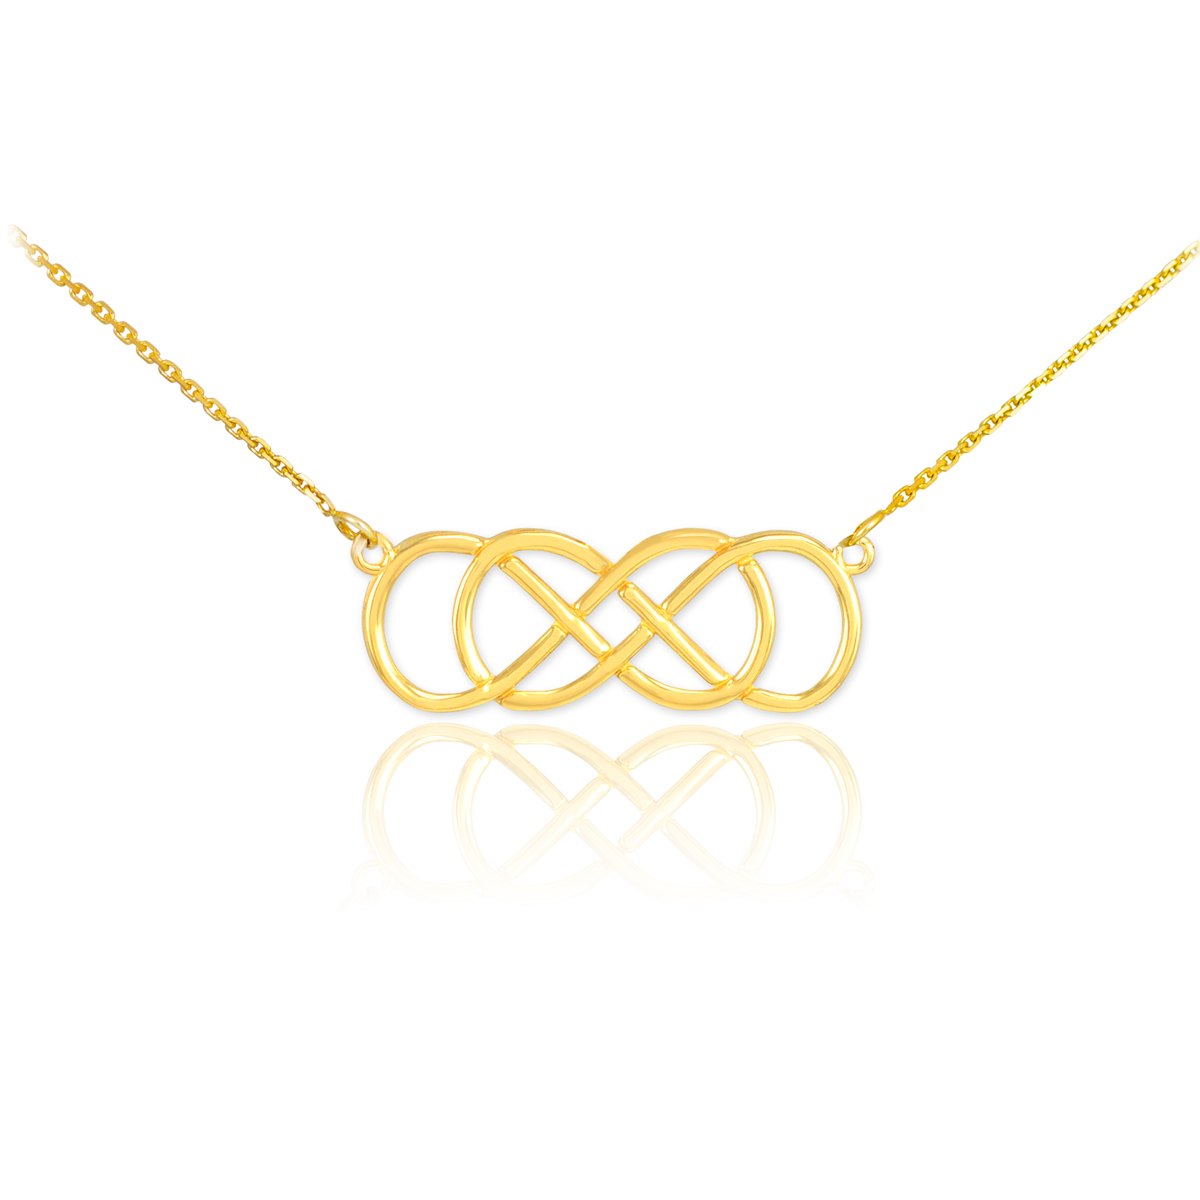 Valentines day gift ideas infinity symbol necklaces factory 14k gold double knot infinity necklace biocorpaavc Image collections